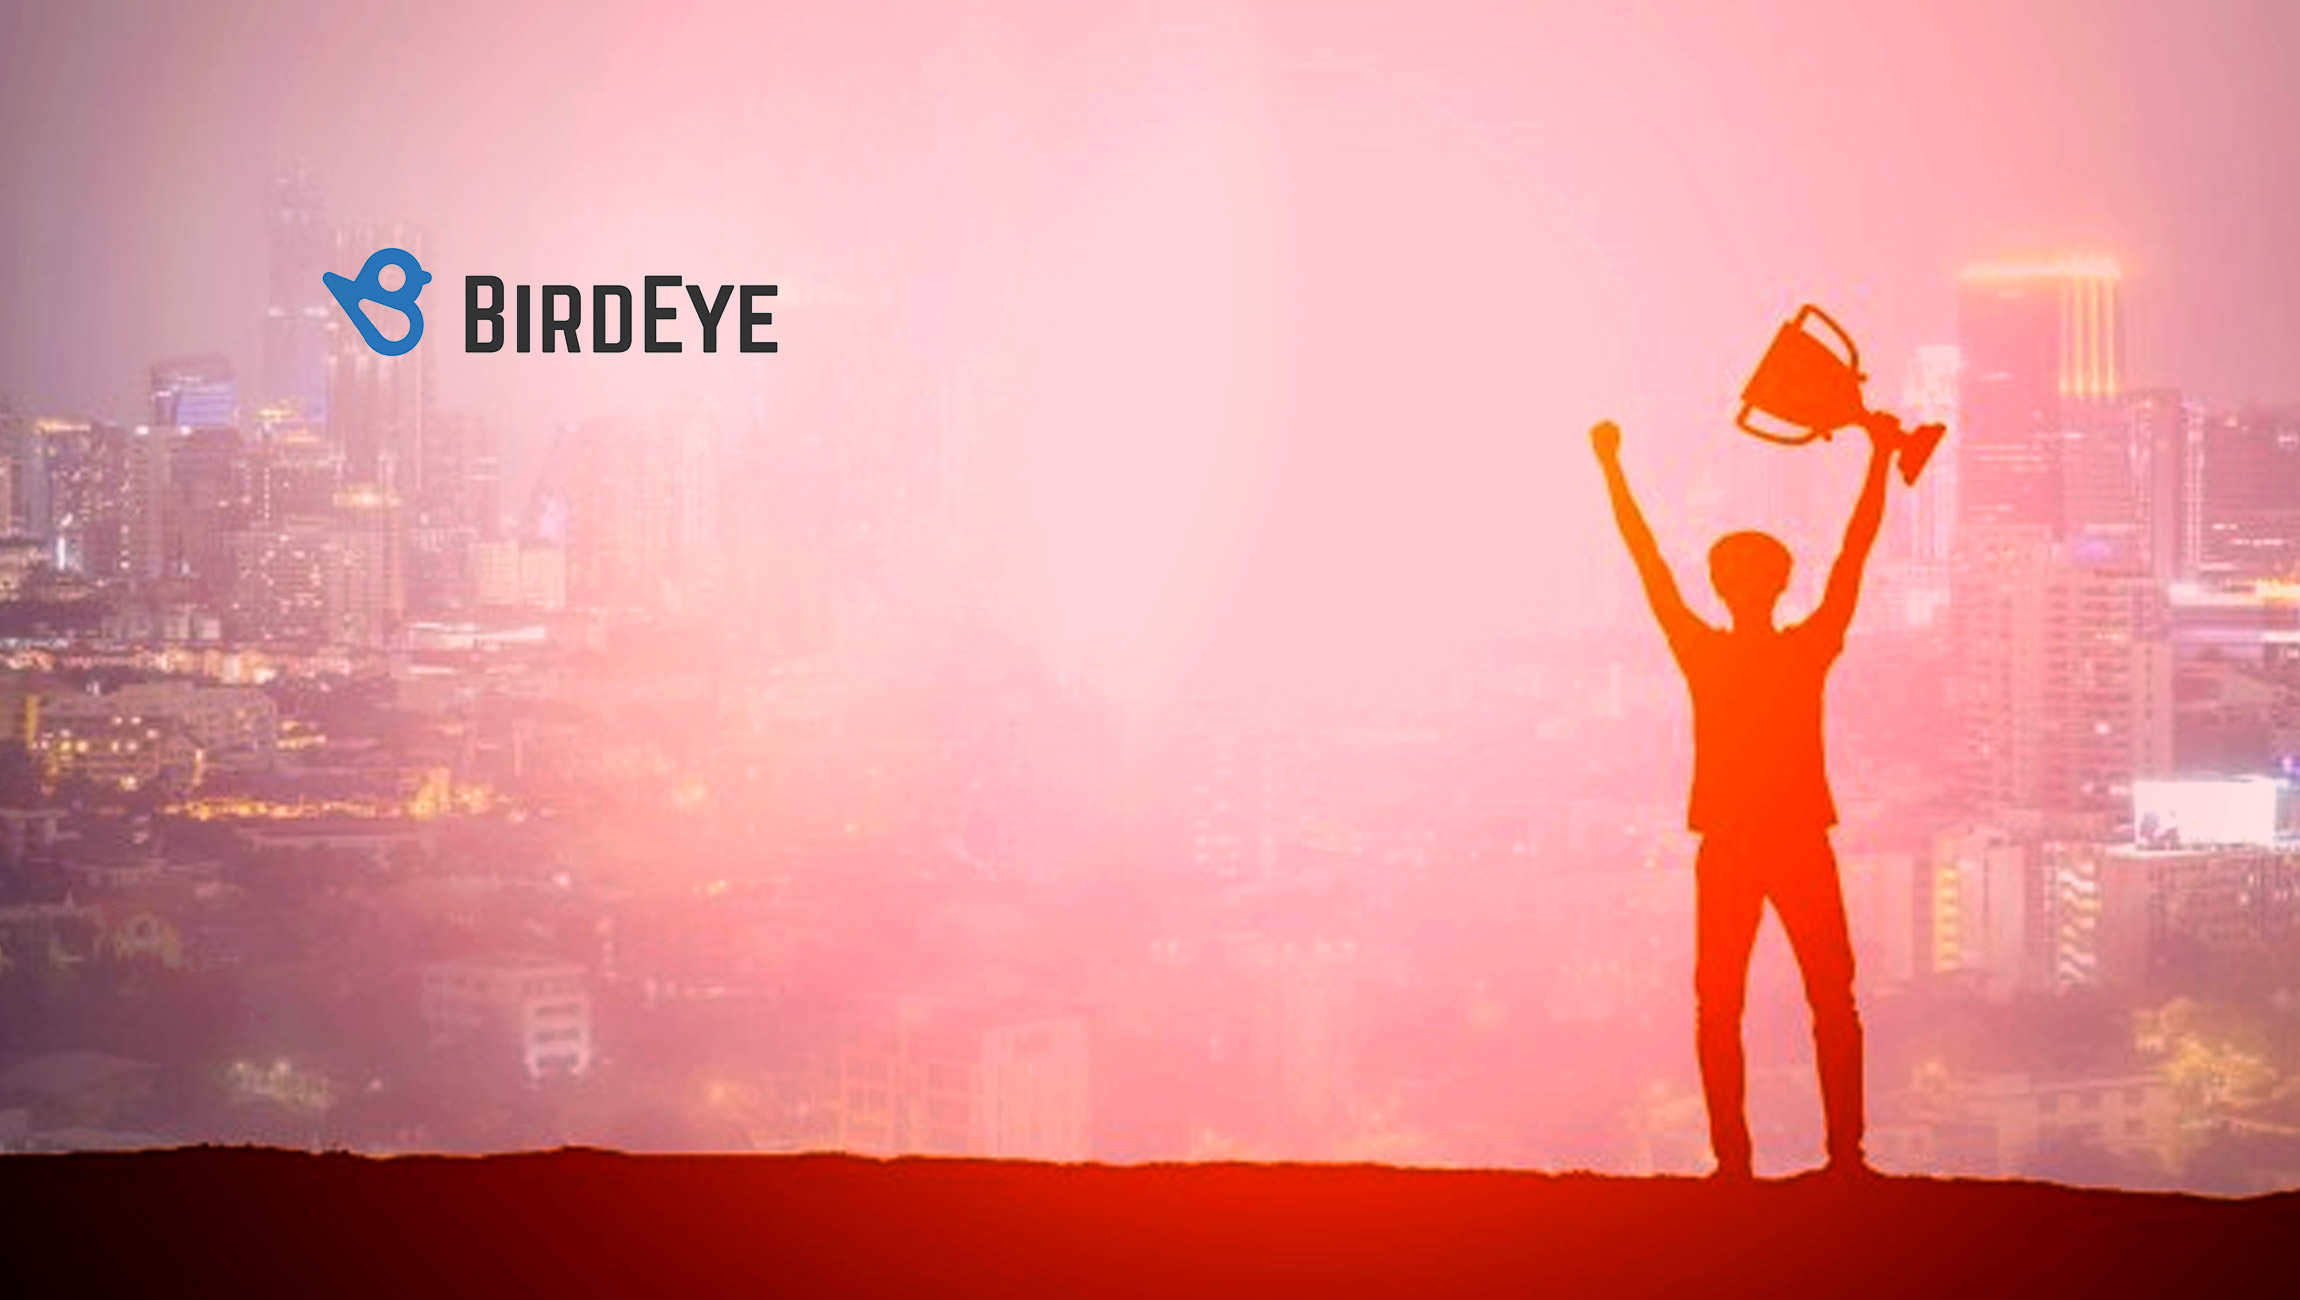 BirdEye Honored As Most Innovative Tech Company in 2019, Winning Its Second Stevie Award